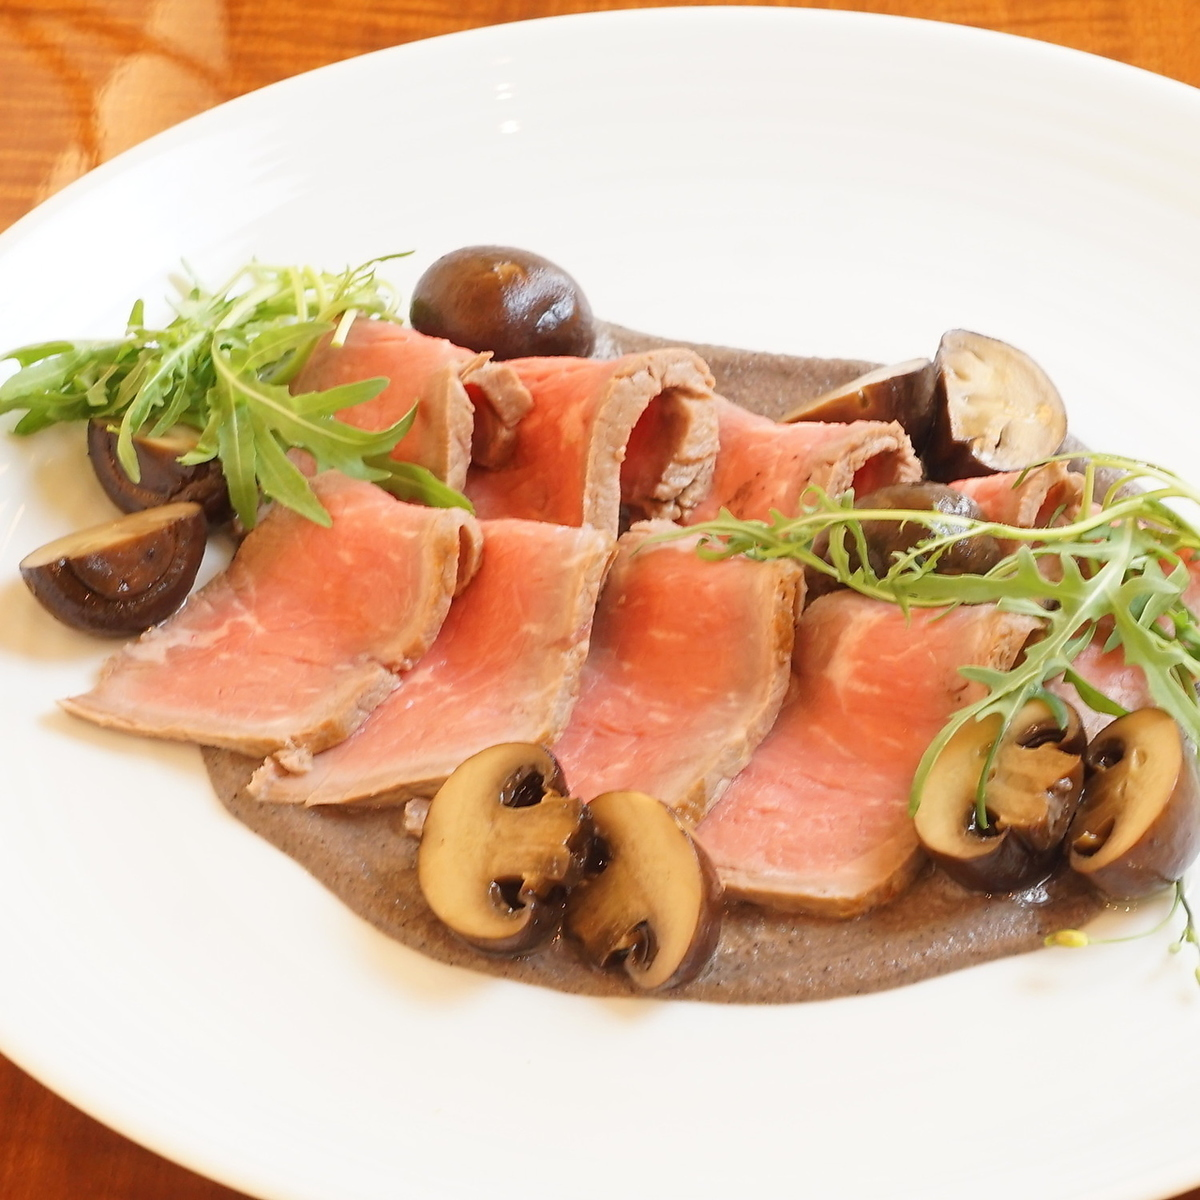 Roast beef with black truffle sauce and brown mushroom confit